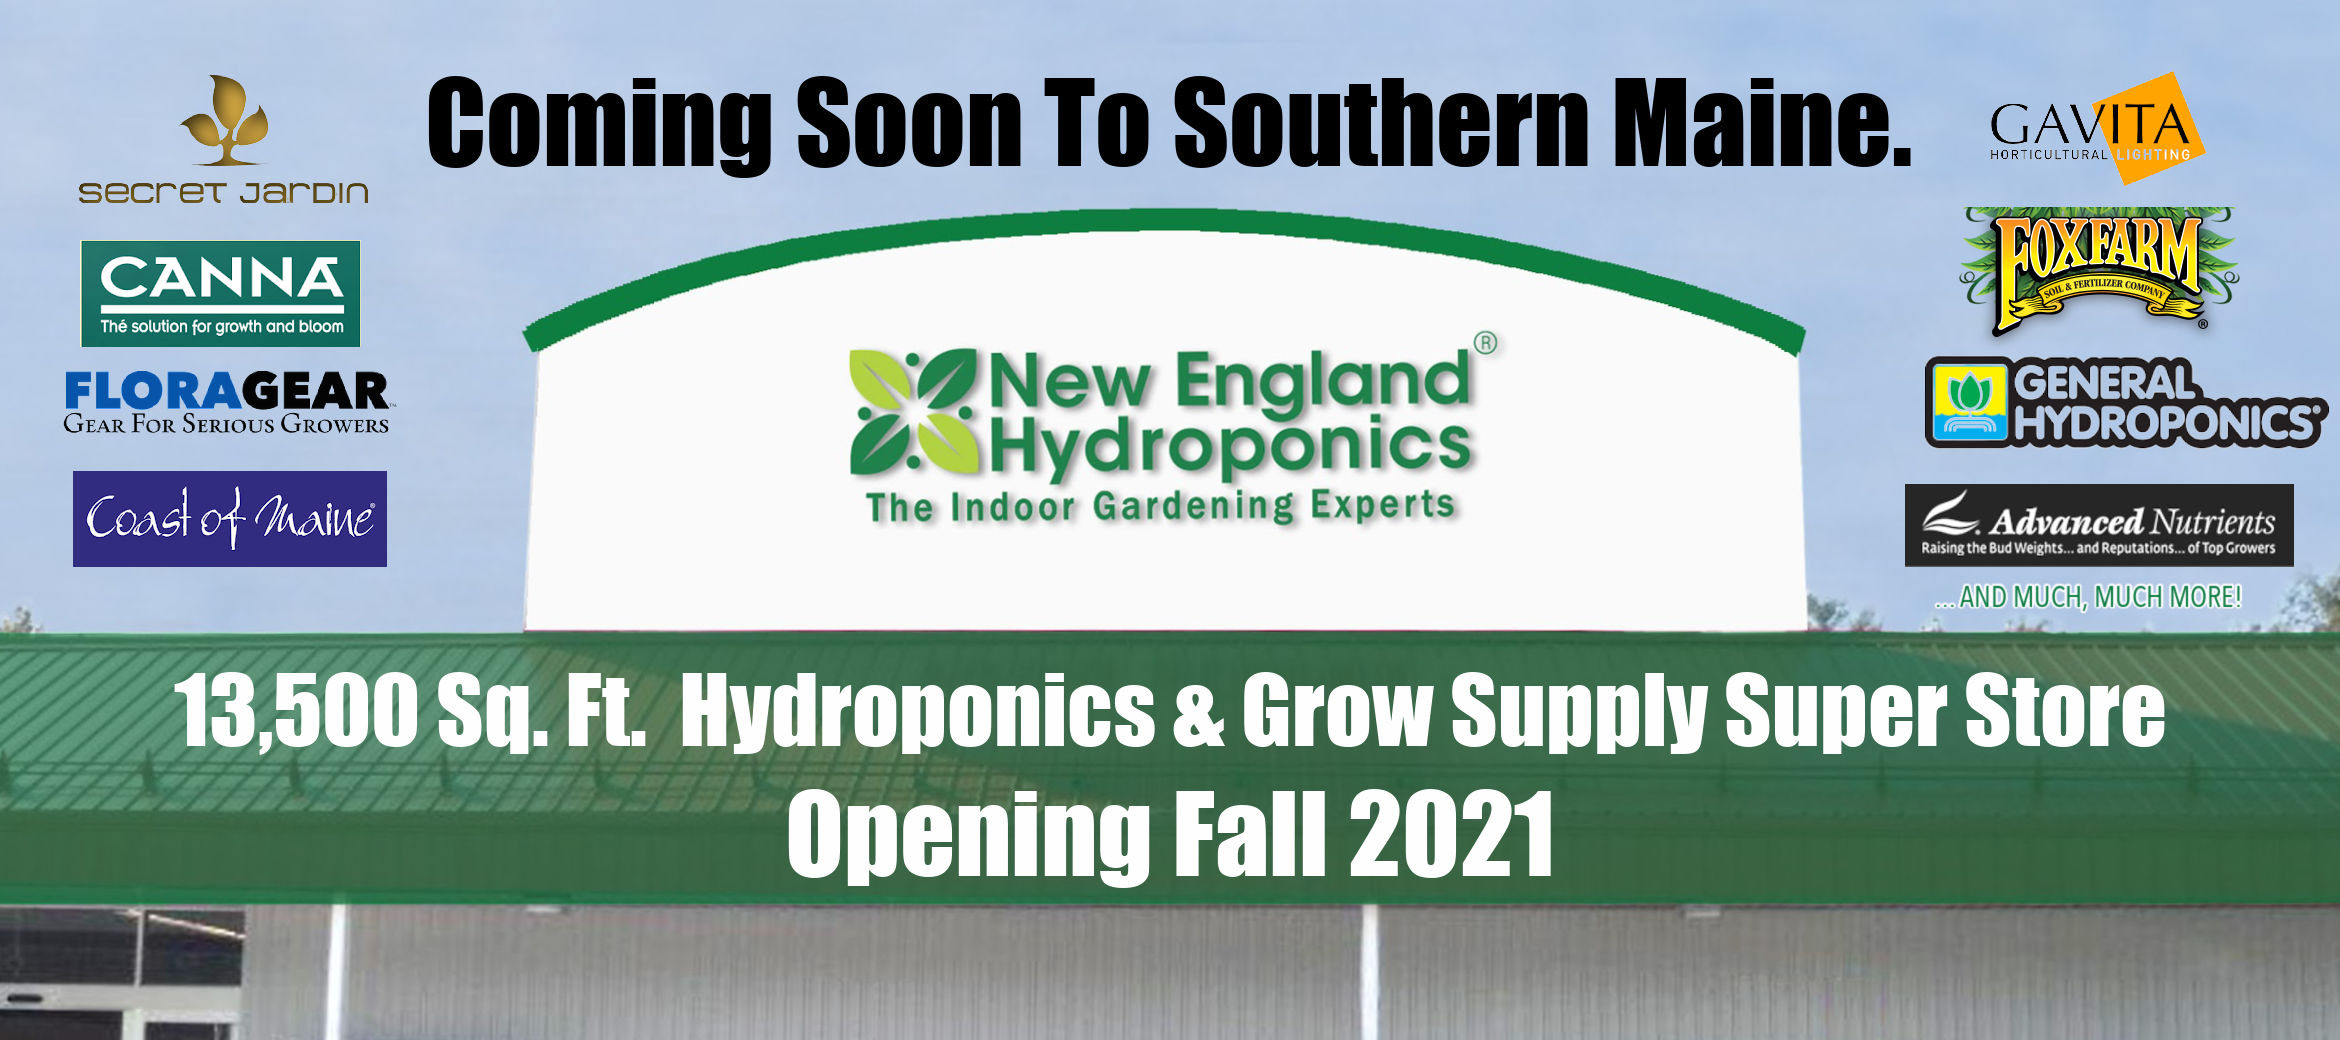 Coming Soon to Southern Maine